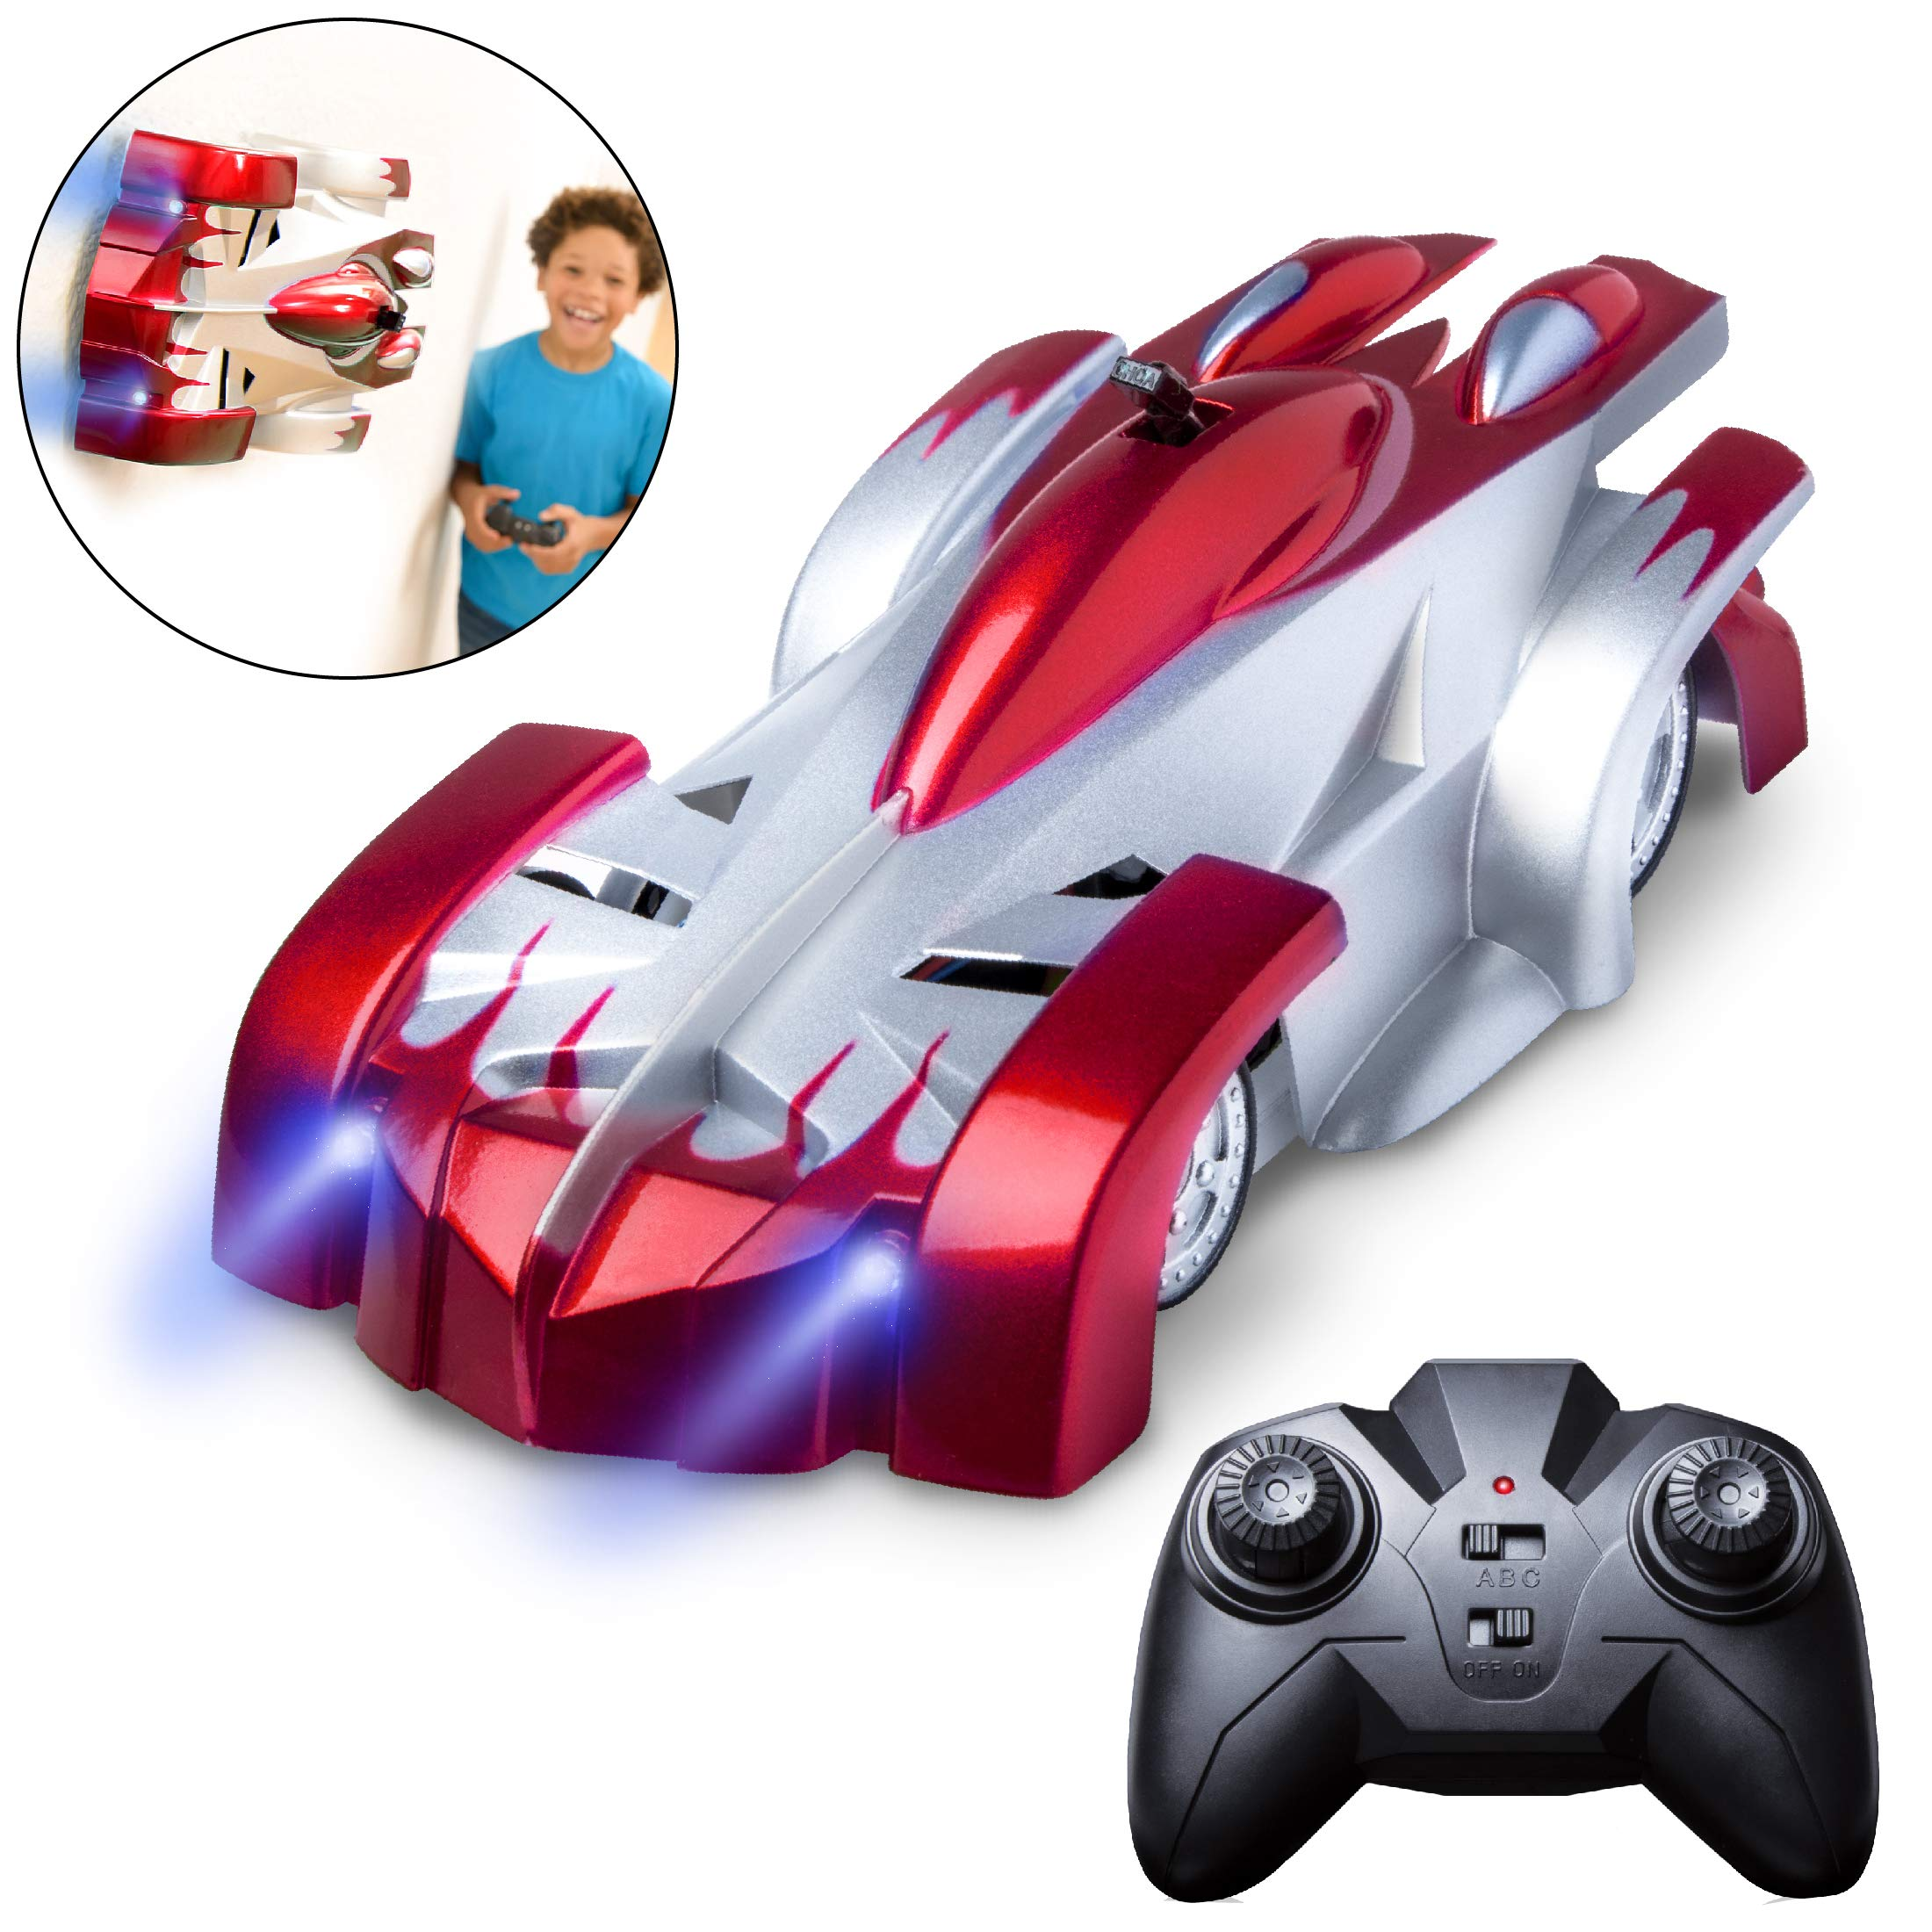 Force1 Remote Control Car Gravity Defying RC Car - RC Cars for Kids and Adults, Race Car Boys Toys for Floor or Wall w/ USB for Rechargeable Fast RC Car (Red) by Force1 (Image #1)